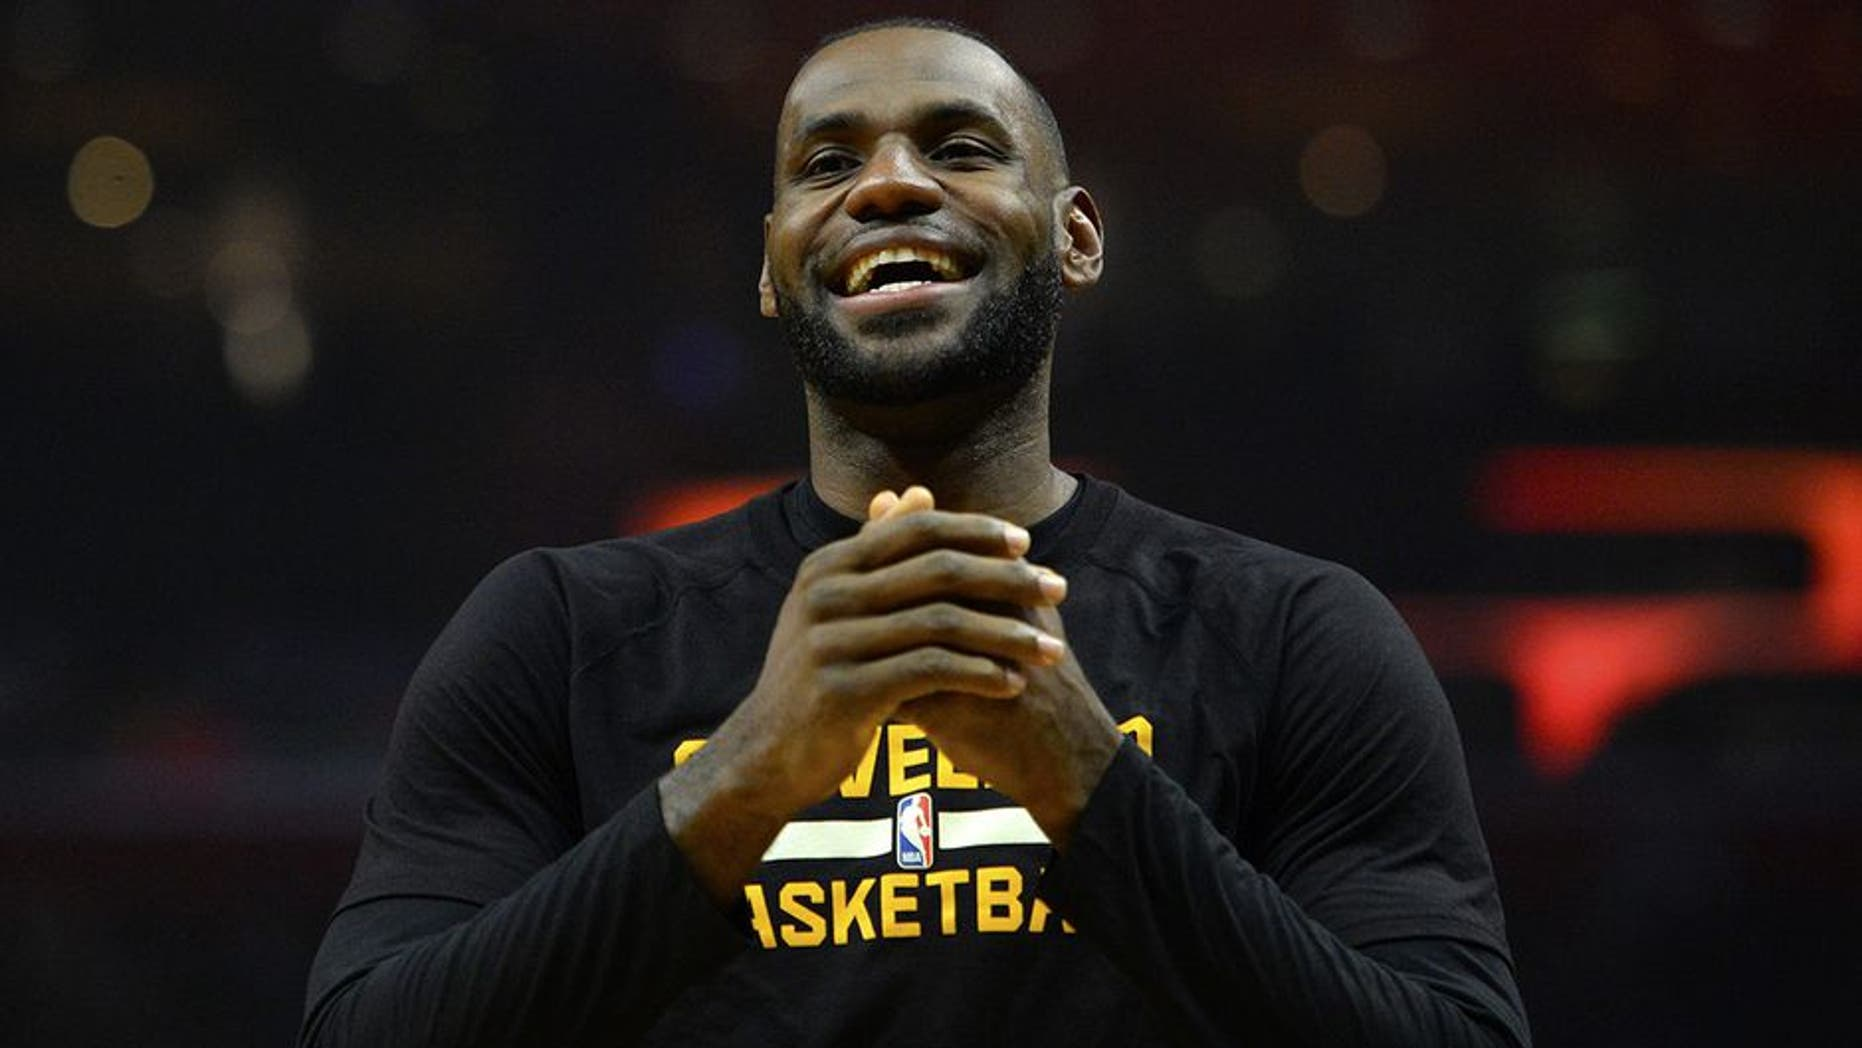 Lonzo Ball Humble >> LeBron James teases the world with snippets of Kendrick Lamar's upcoming album | Fox News